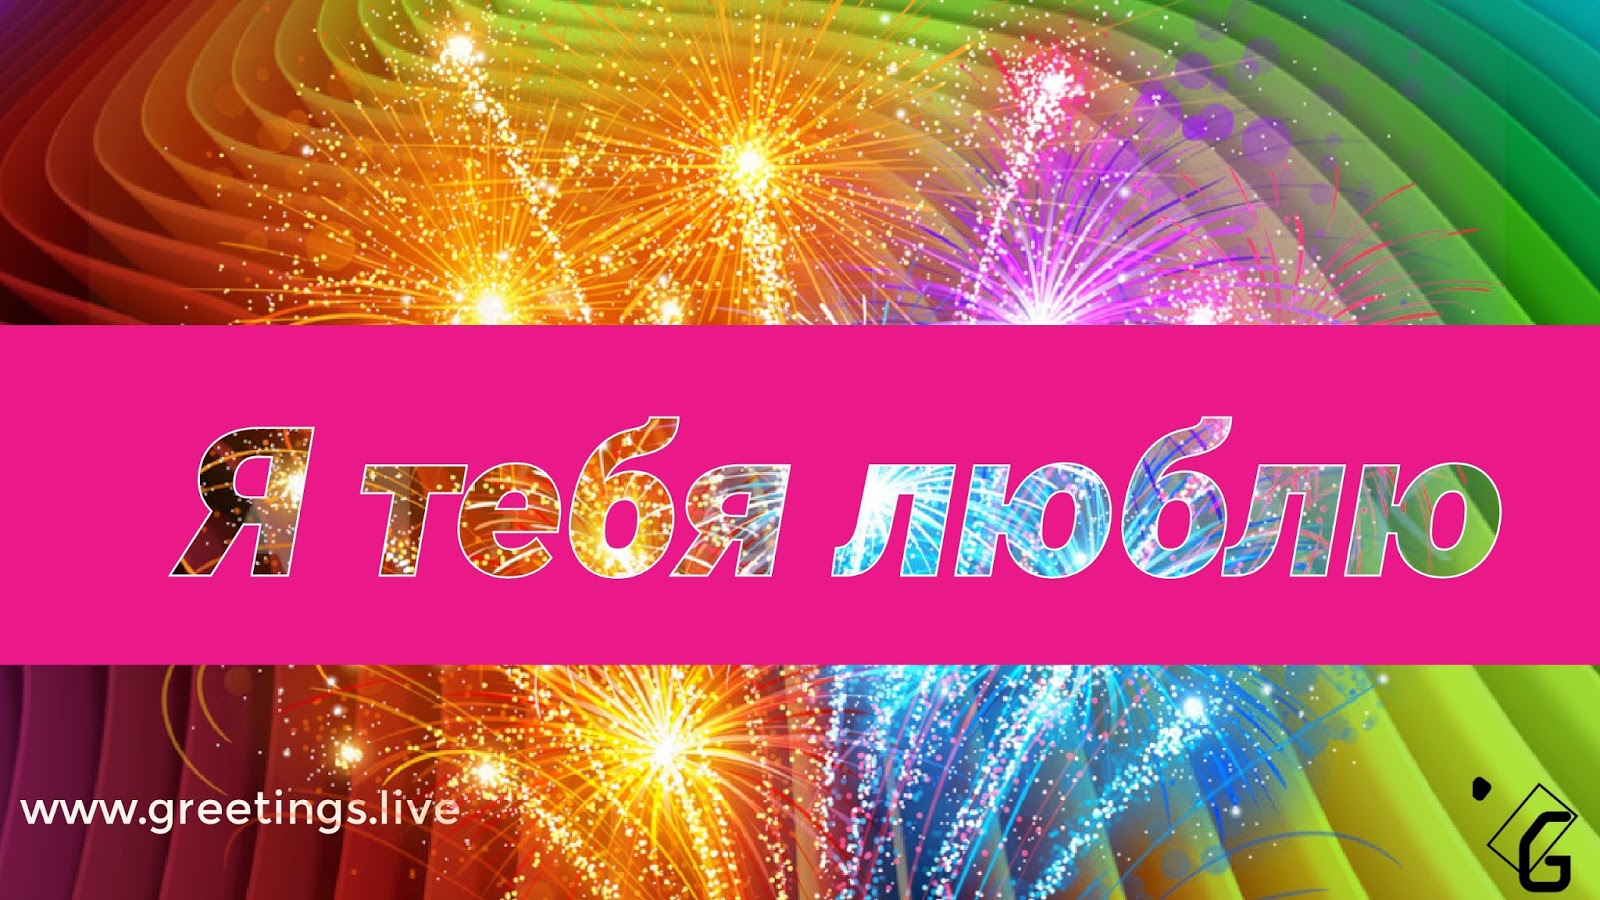 Greetingsve hd images love smile birthday wishes free download russian love greetings fire works effect kristyandbryce Image collections